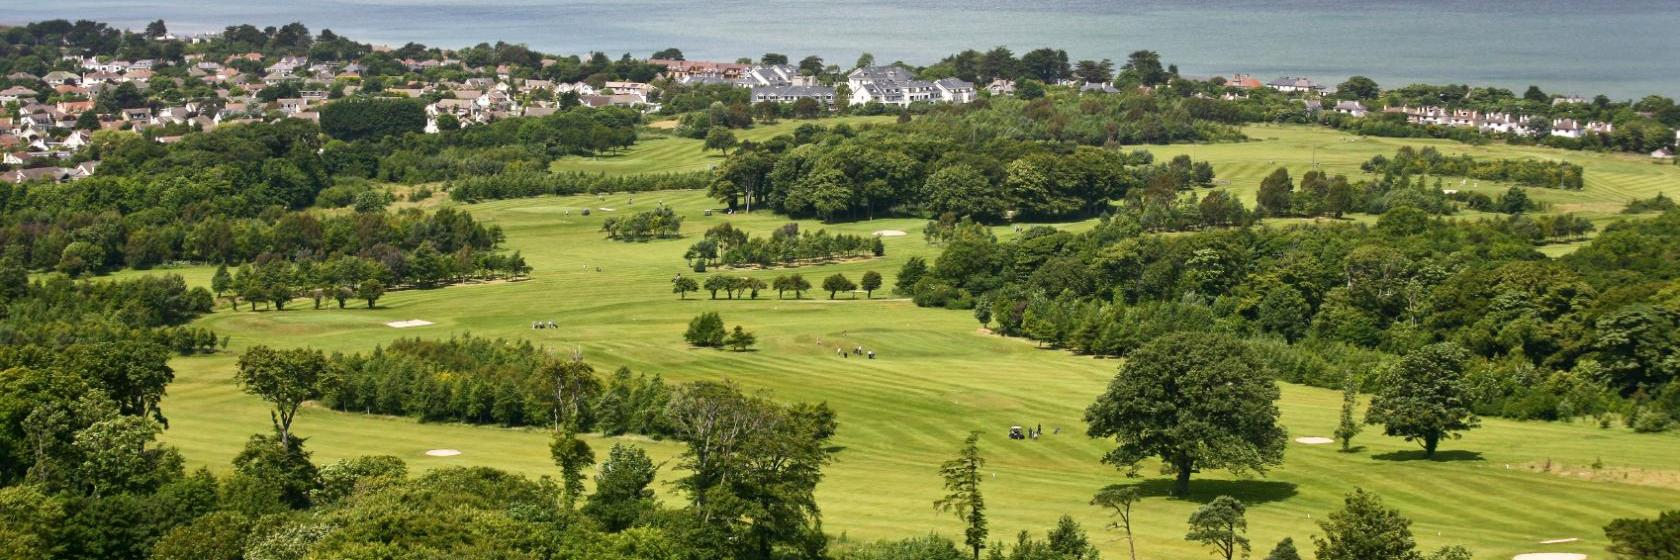 The best available hotels & places to stay near Portmarnock